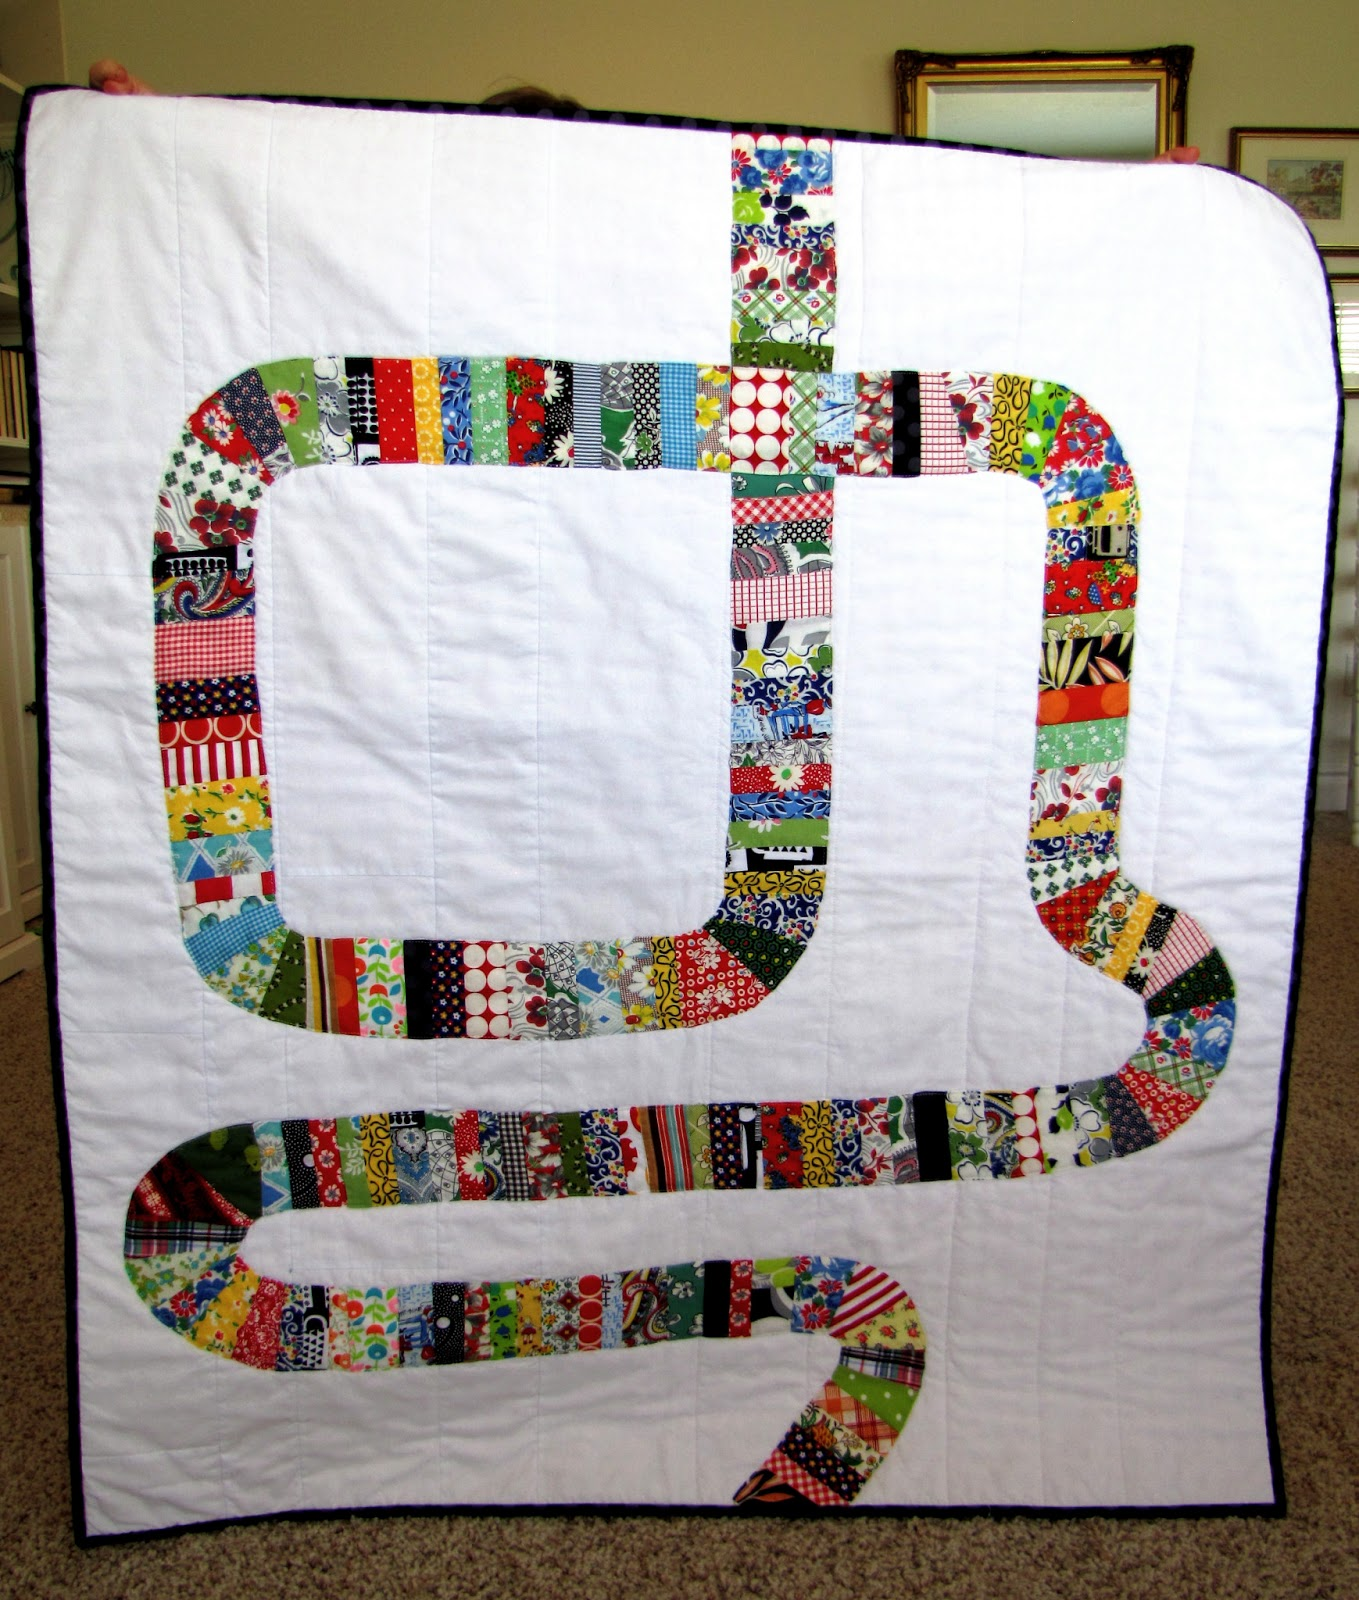 http://snippysisters.blogspot.com/2013/06/road-to-recovery-quilt-for-joyces.html